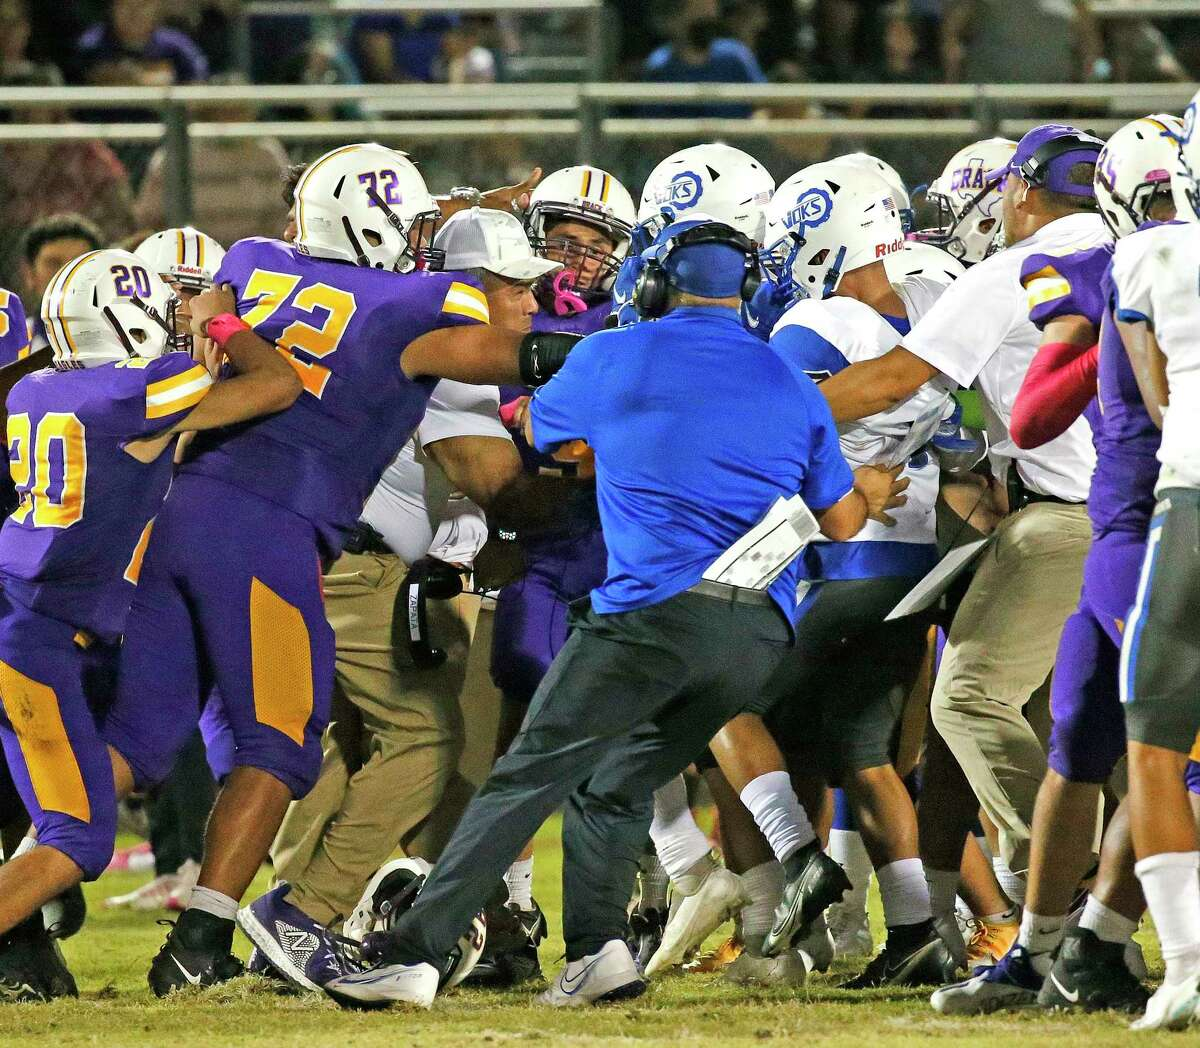 Coaches try to separate the teams after tempers got out of control in the fourth quarter. Lanier defeated Brackenridge 21-14 at SAISD Complex on Friday, September 17, 2021.